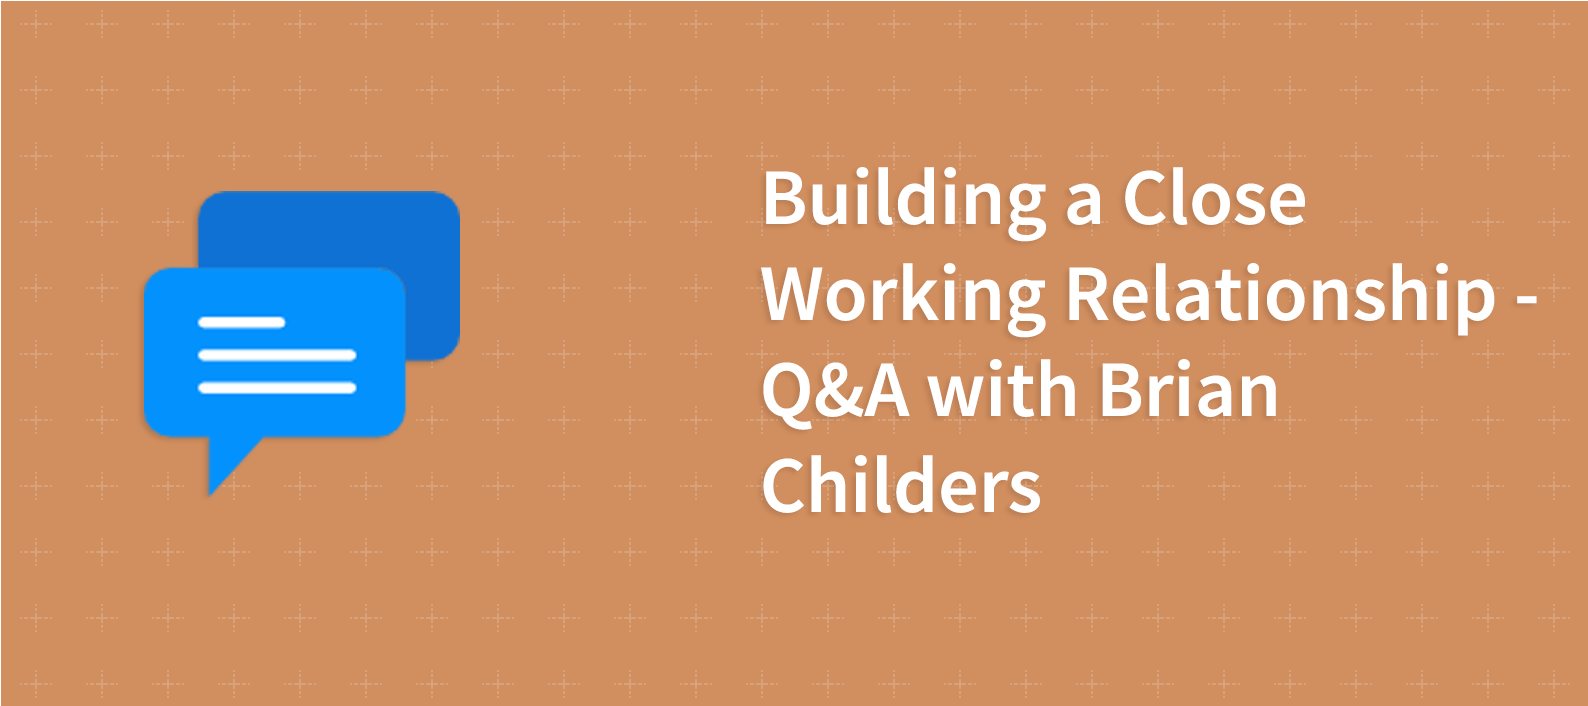 Building a Close Working Relationship – Q&A with Brian Childers